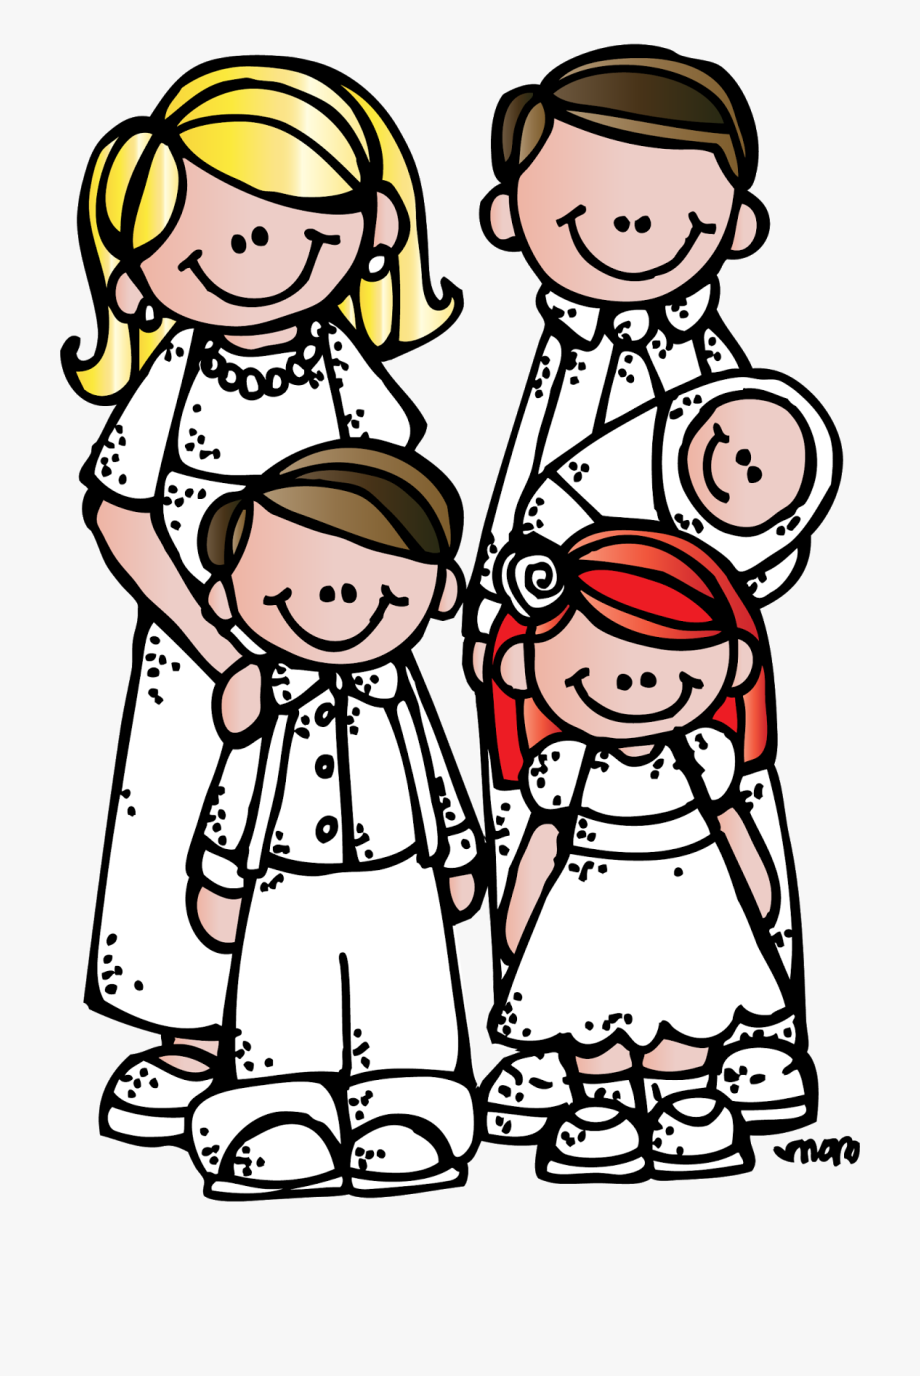 Free lds clipart family royalty free library Melonheadz School House Clipart Black And White - Lds Family Clipart ... royalty free library